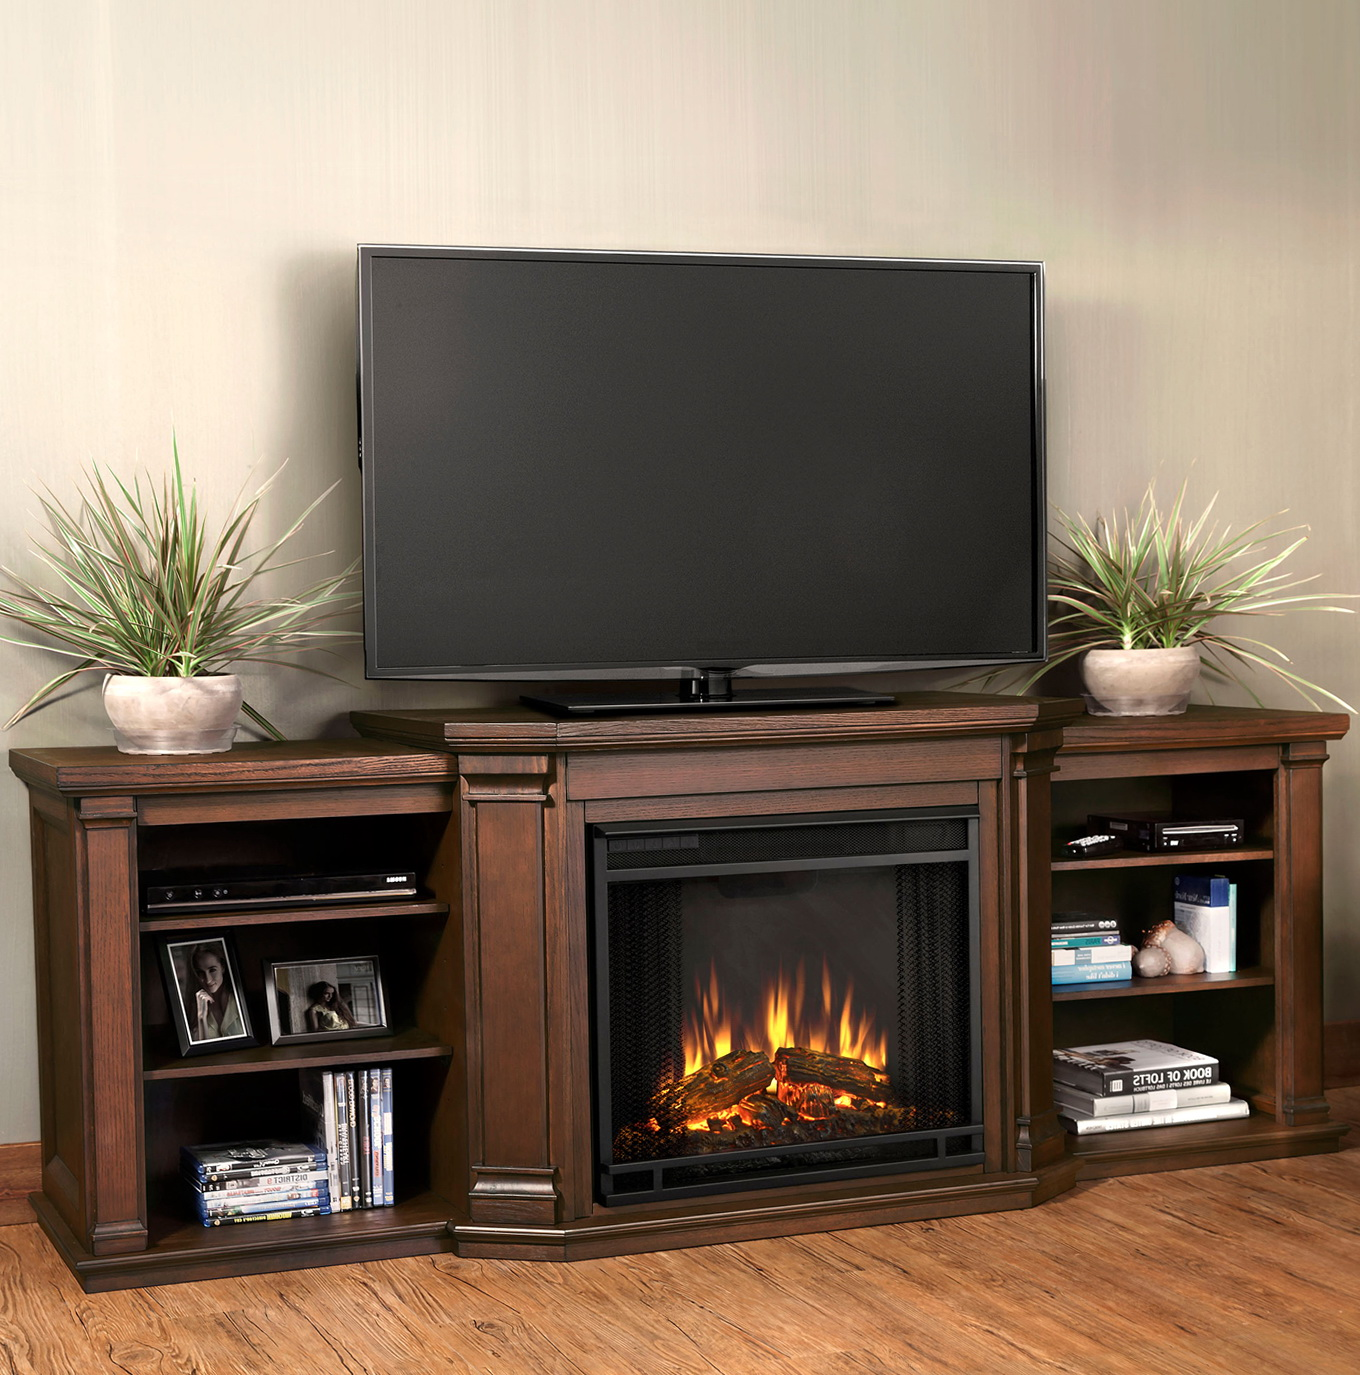 Fake Fireplace Tv Stand At Costco Home Design Ideas